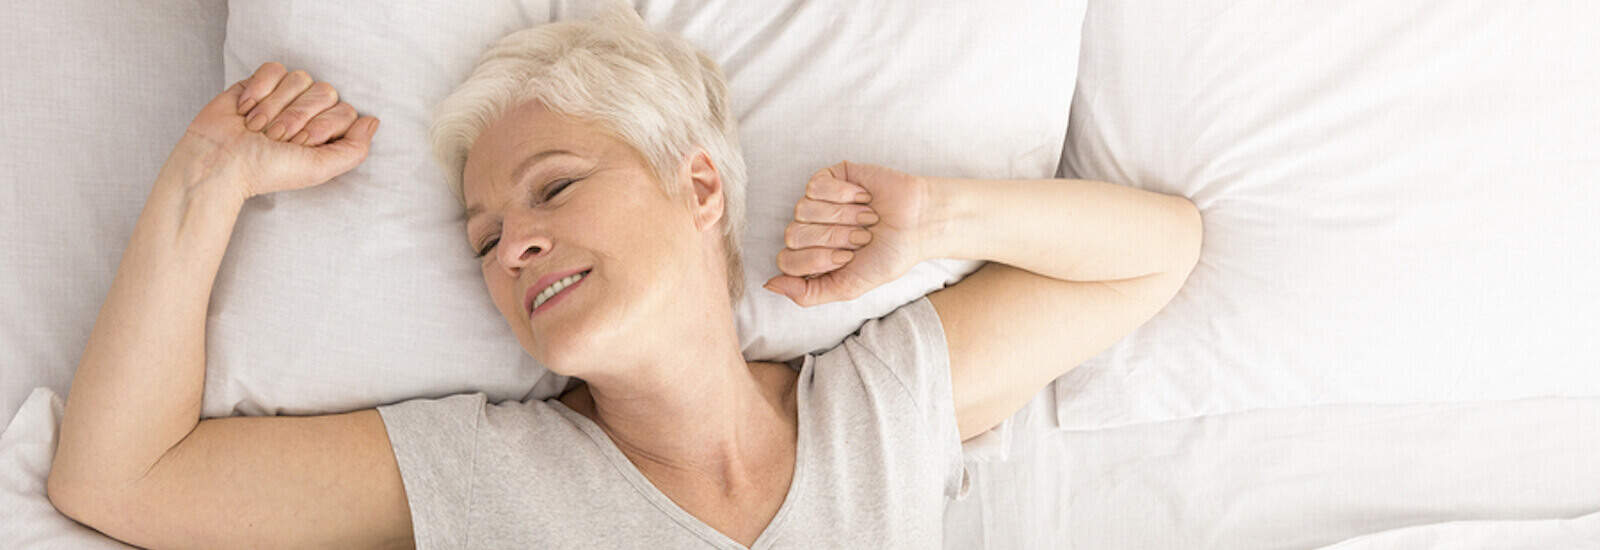 Senior woman stretching in bed after a good night's sleep.